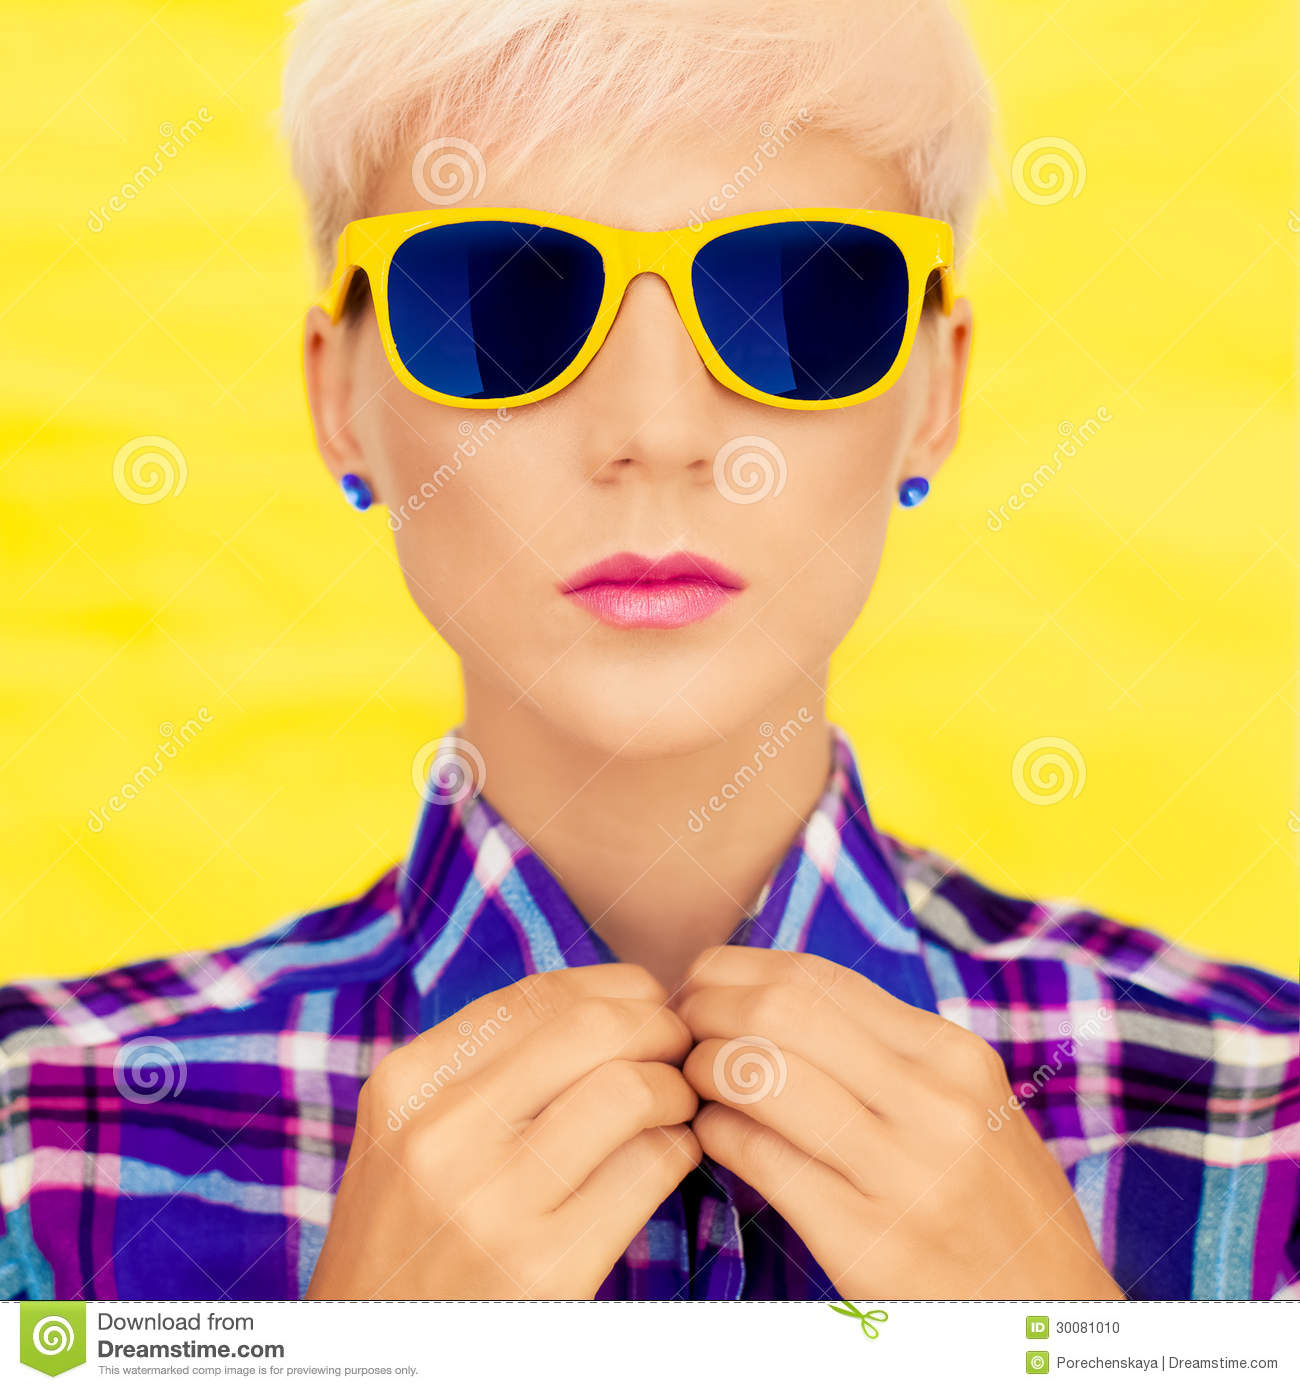 sunglasses fashion  Portrait Of A Girl In Fashion Sunglasses Stock Photo - Image: 30081010